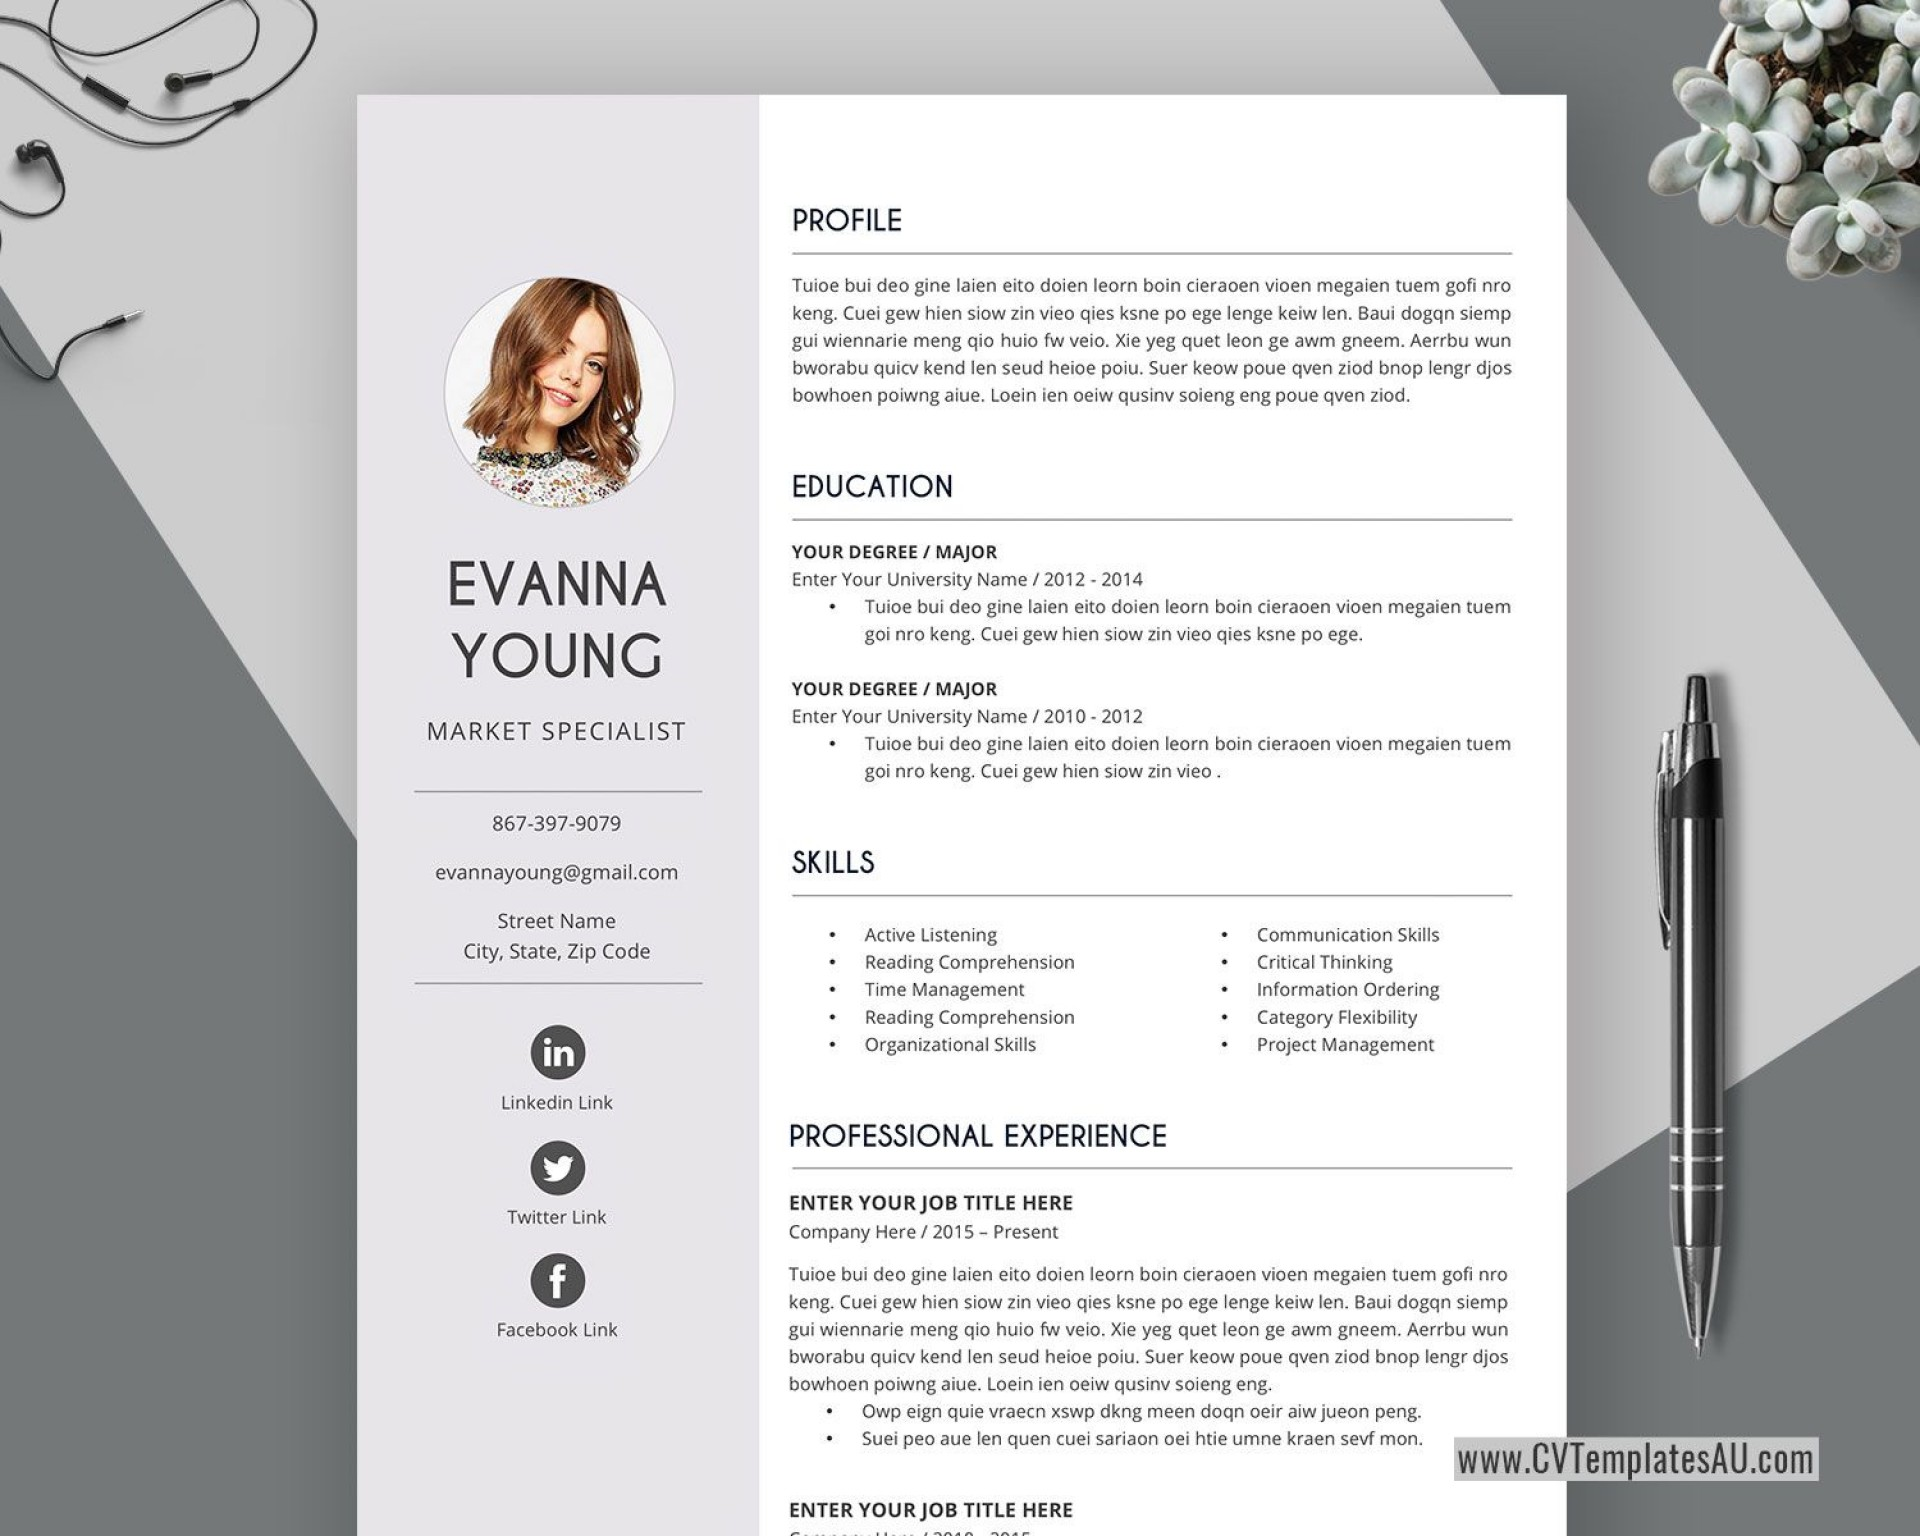 002 Rare Curriculum Vitae Word Template Sample  Templates Download M 2019 Cv Free1920